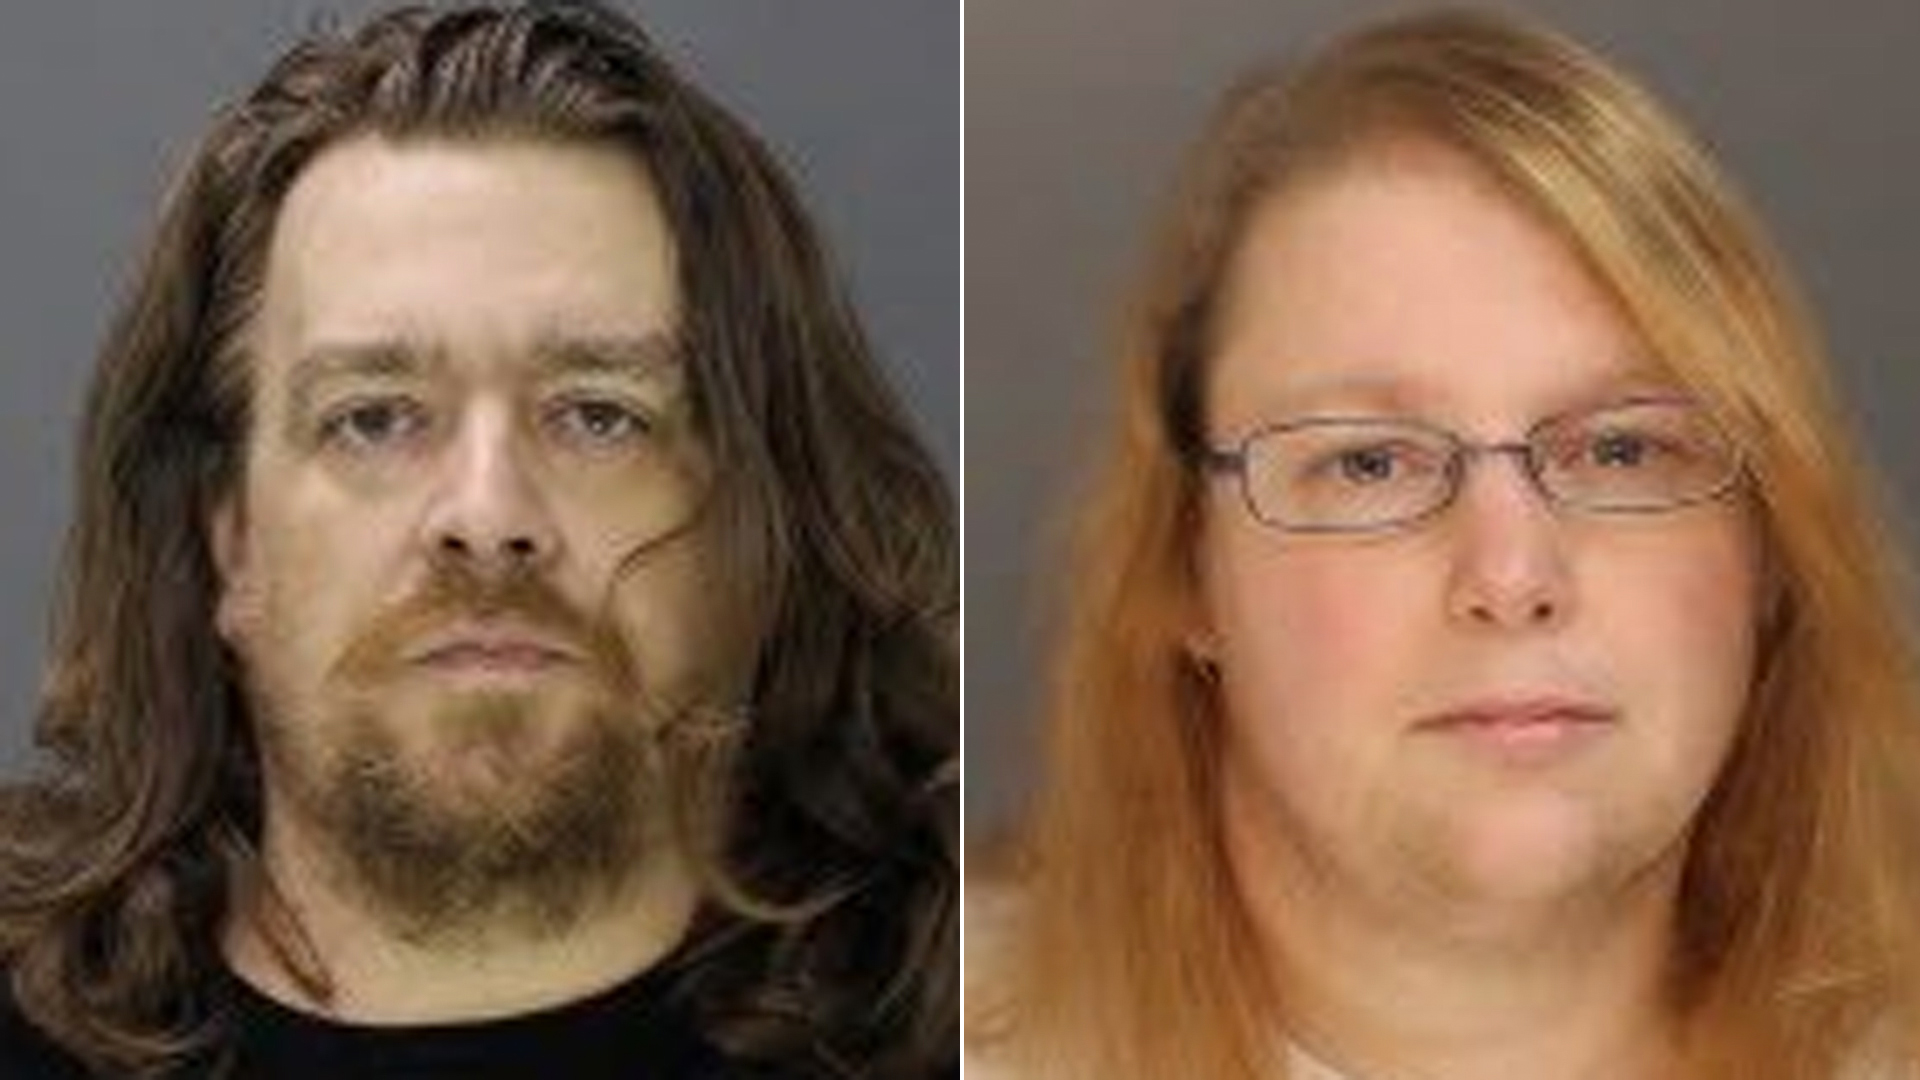 Jacob Sullivan, left, and Sara Packer, right, are seen in photos released by the Bucks County District Attorney's Office.